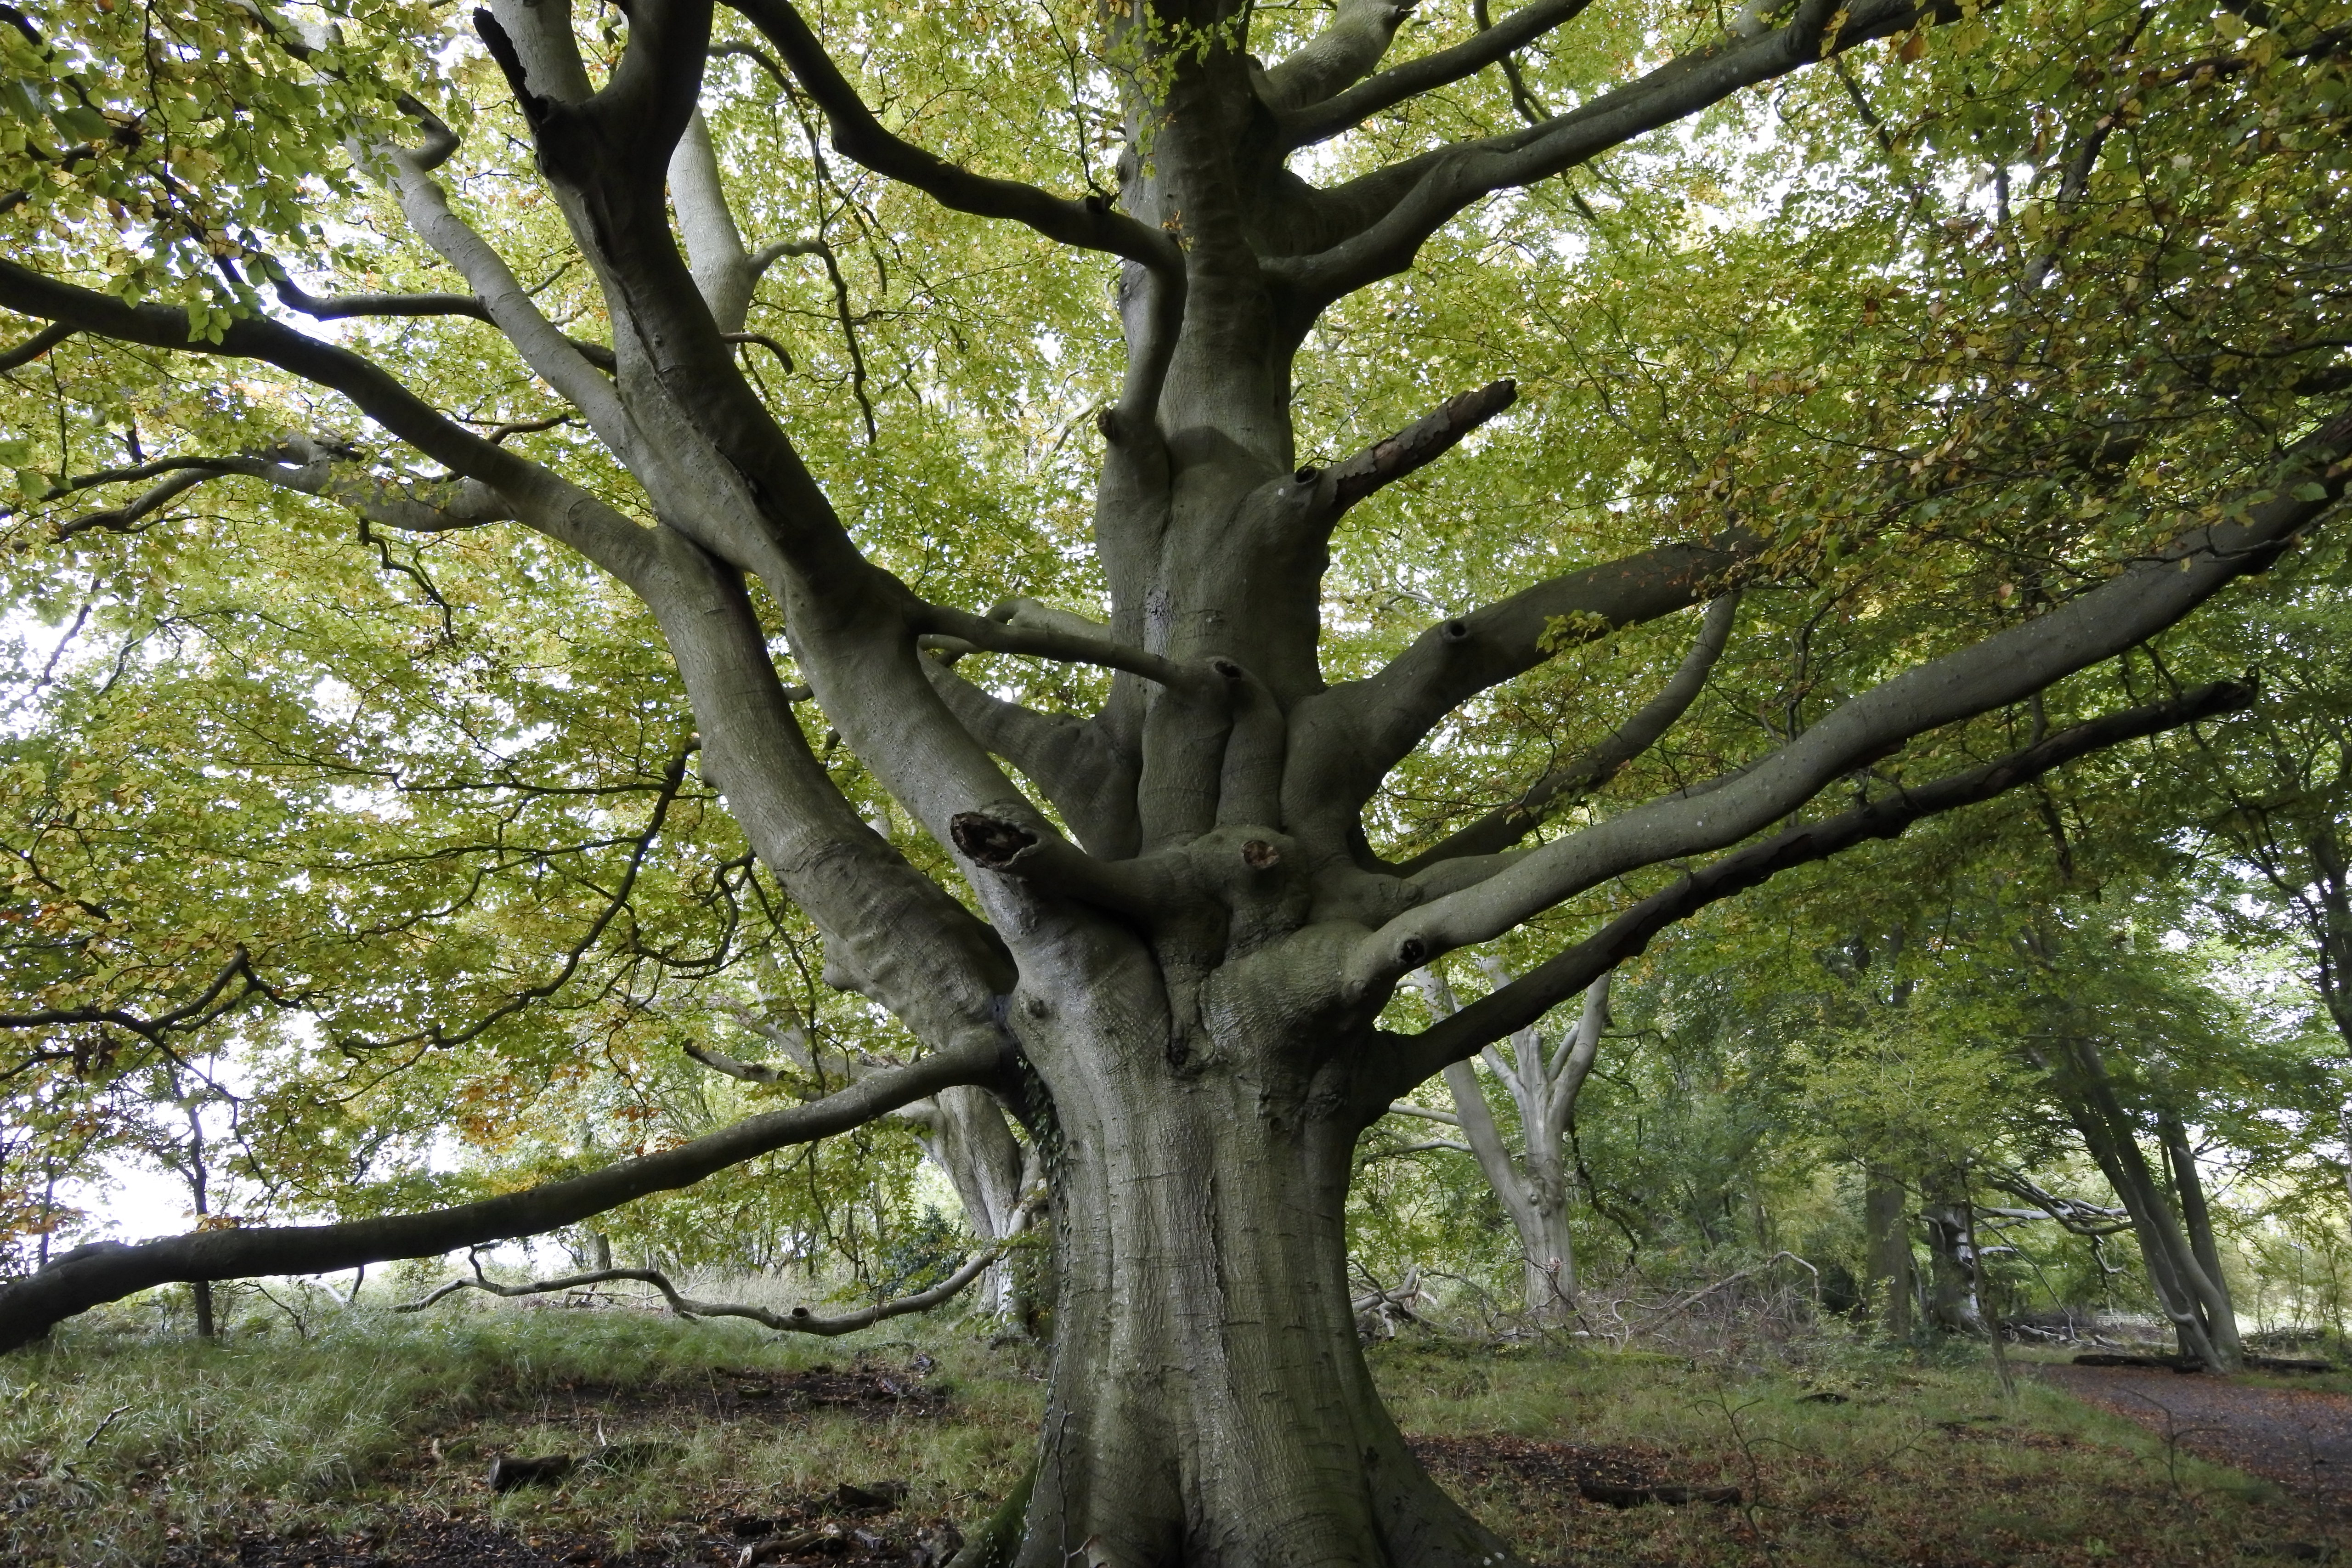 This tree is in Wytham Woods, Oxford